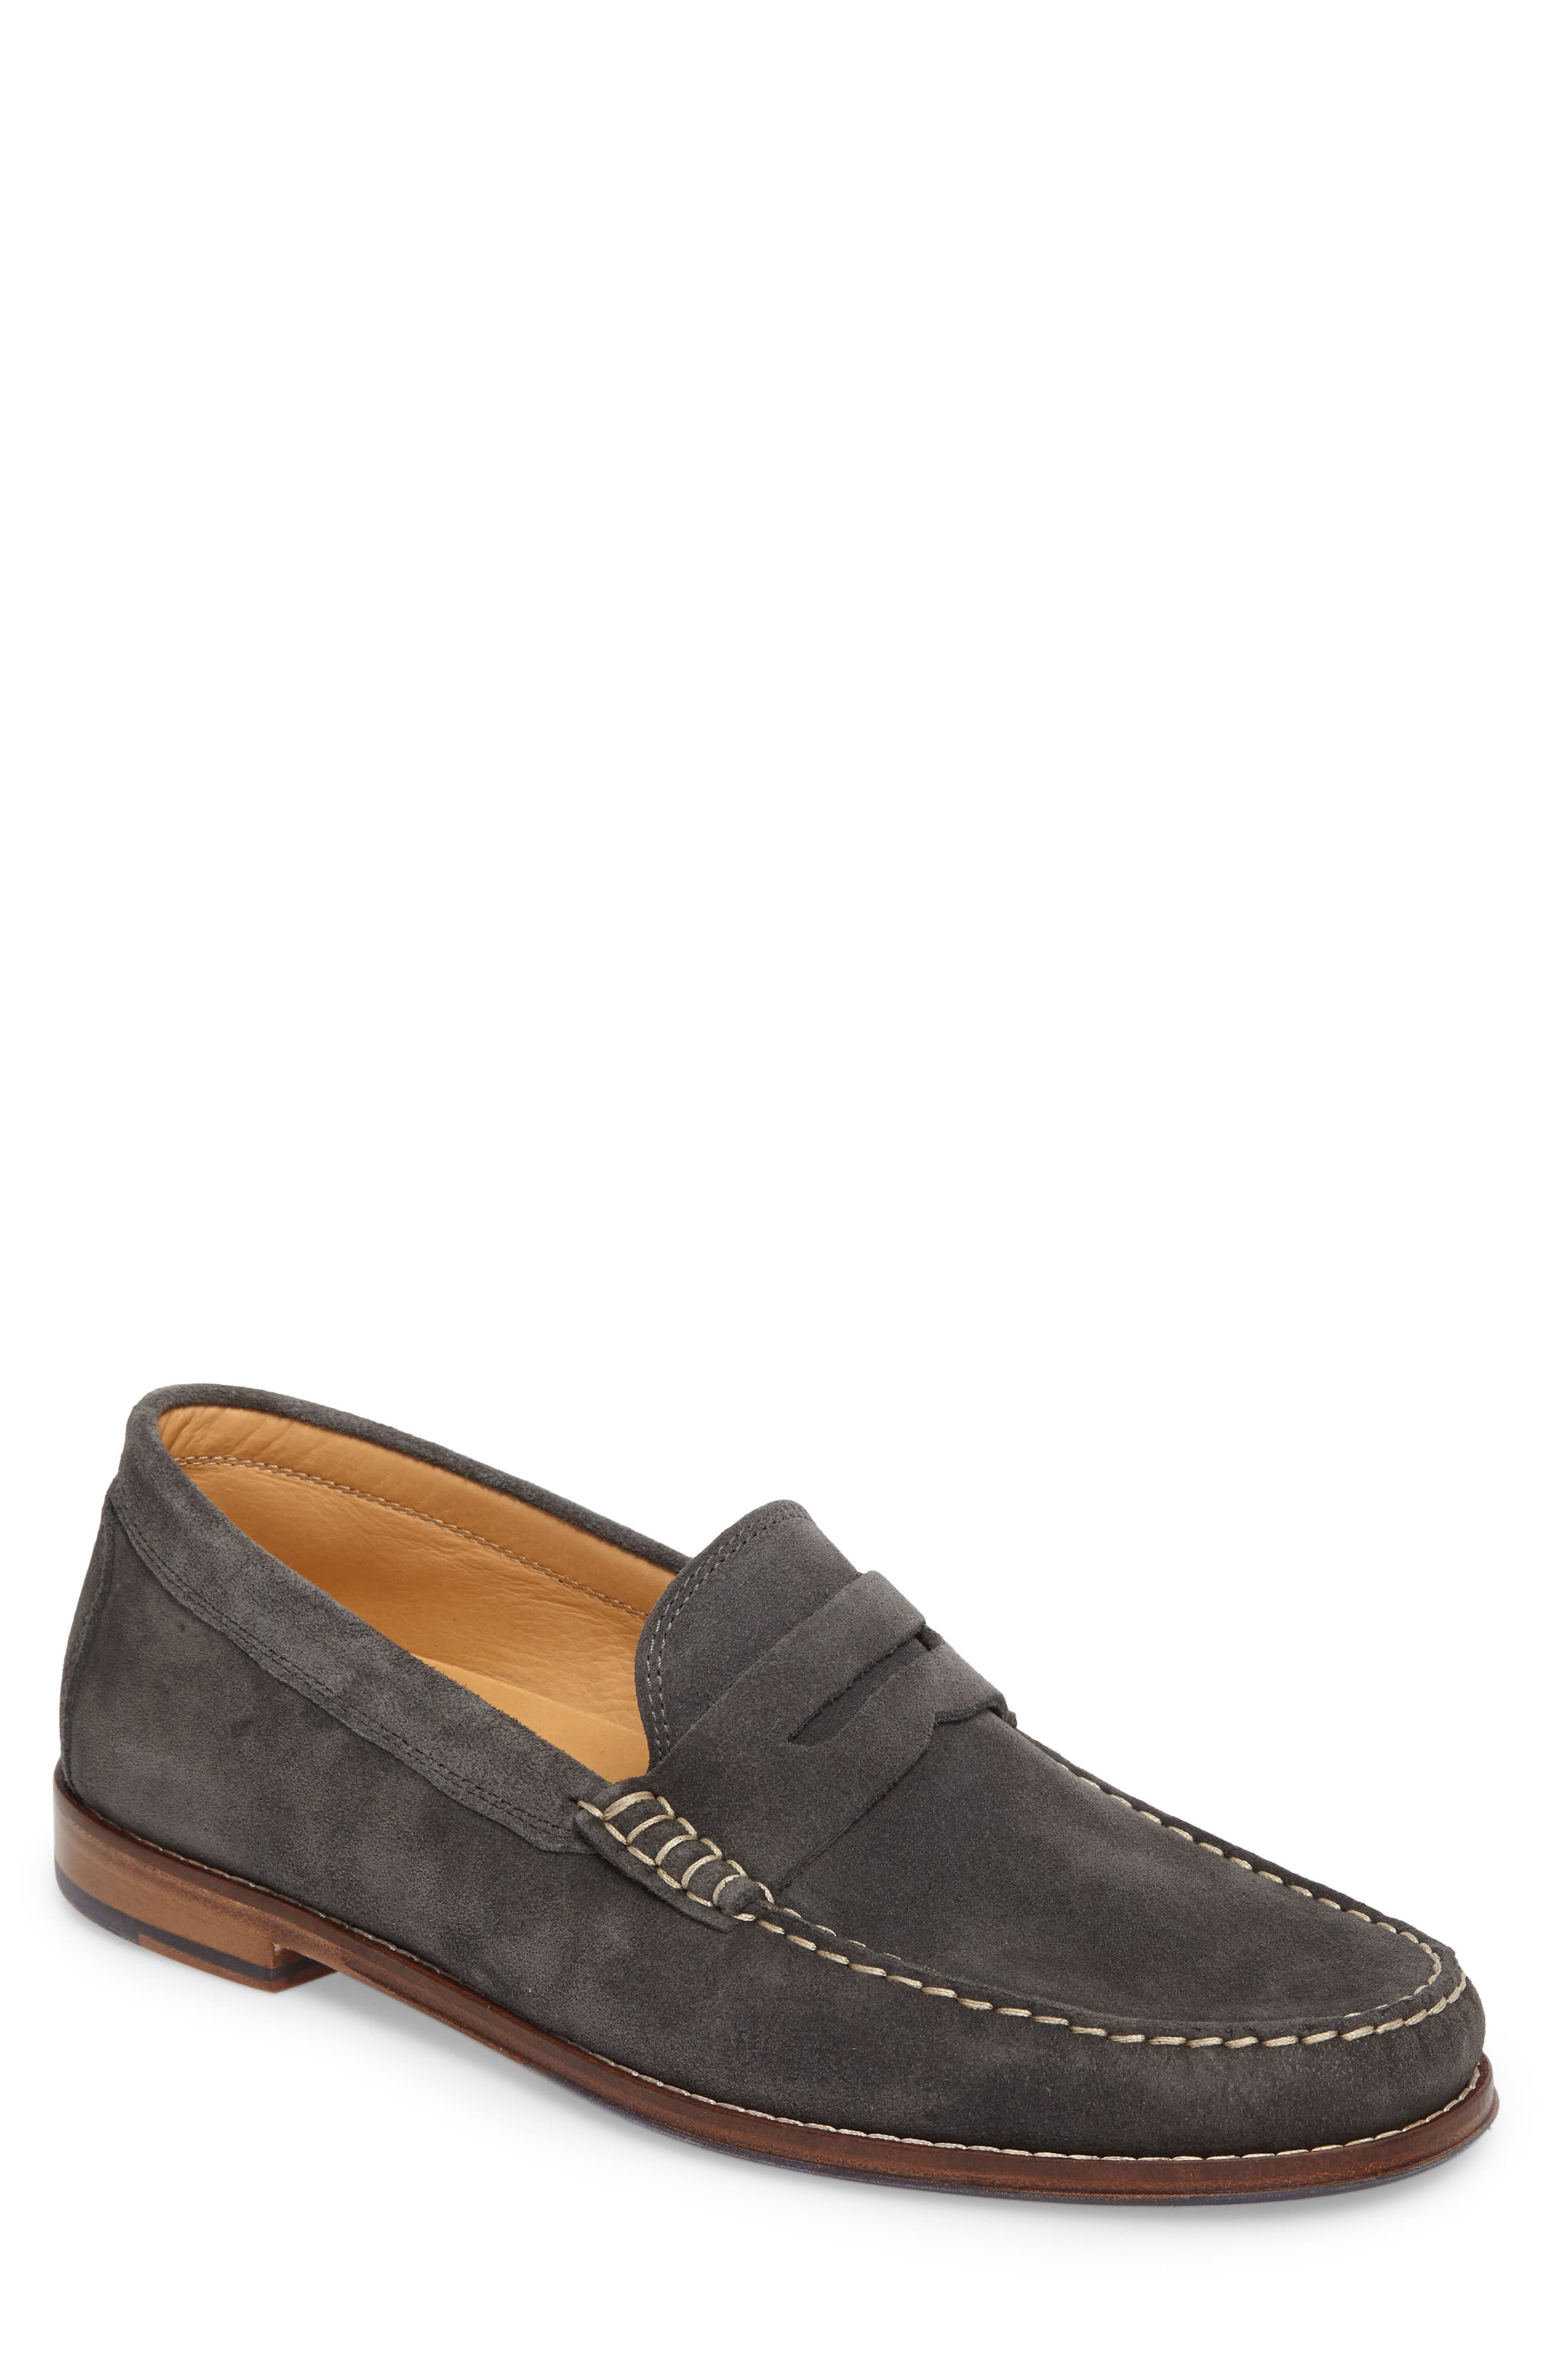 Austen Heller Ripley Penny Loafer (Men)